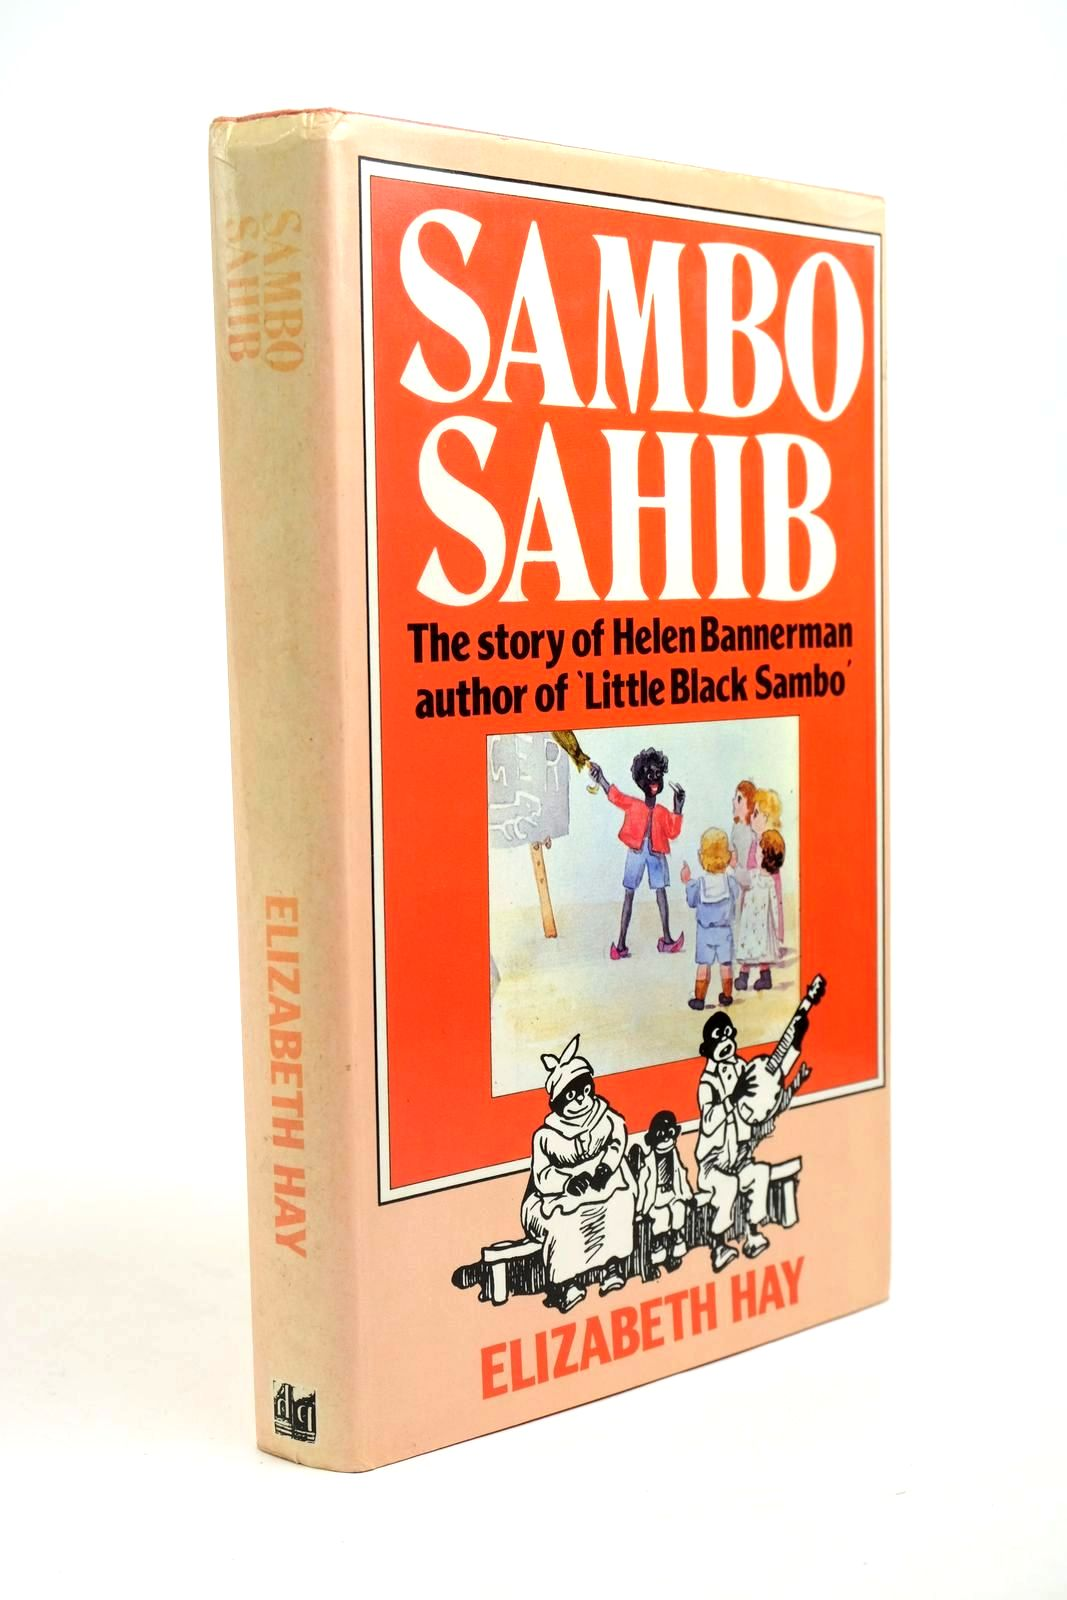 Photo of SAMBO SAHIB written by Hay, Elizabeth published by Paul Harris Publishing (STOCK CODE: 1321445)  for sale by Stella & Rose's Books